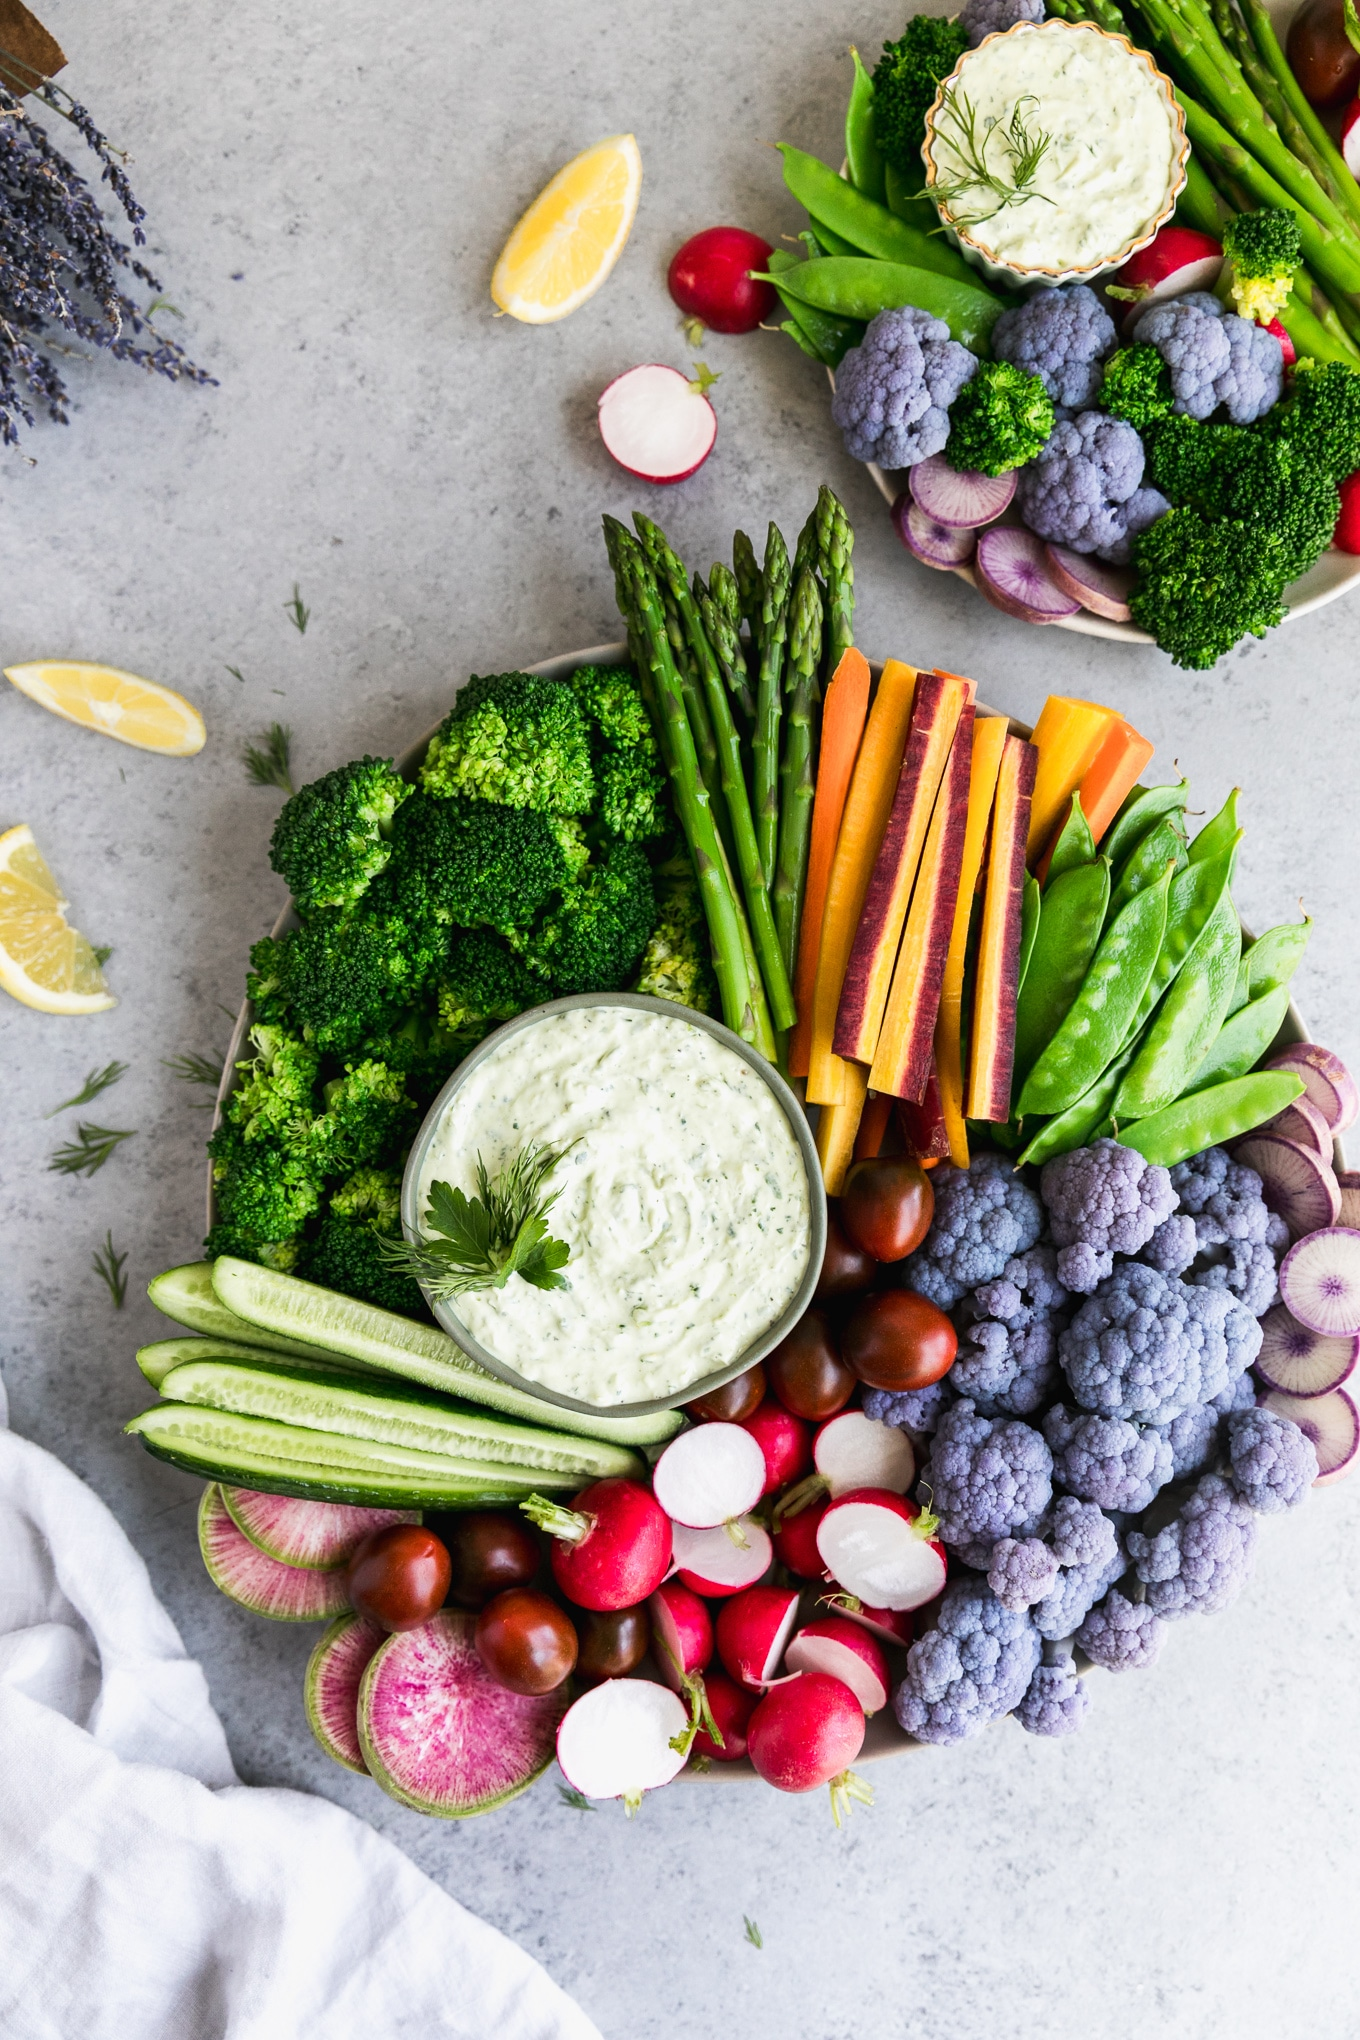 Overhead shot of a veggie platter with broccoli, asparagus, carrots, snap peas, purple cauliflower, radishes, and cucumbers, with a smaller veggie tray in the top right corner and a bouquet of lavender in the top left